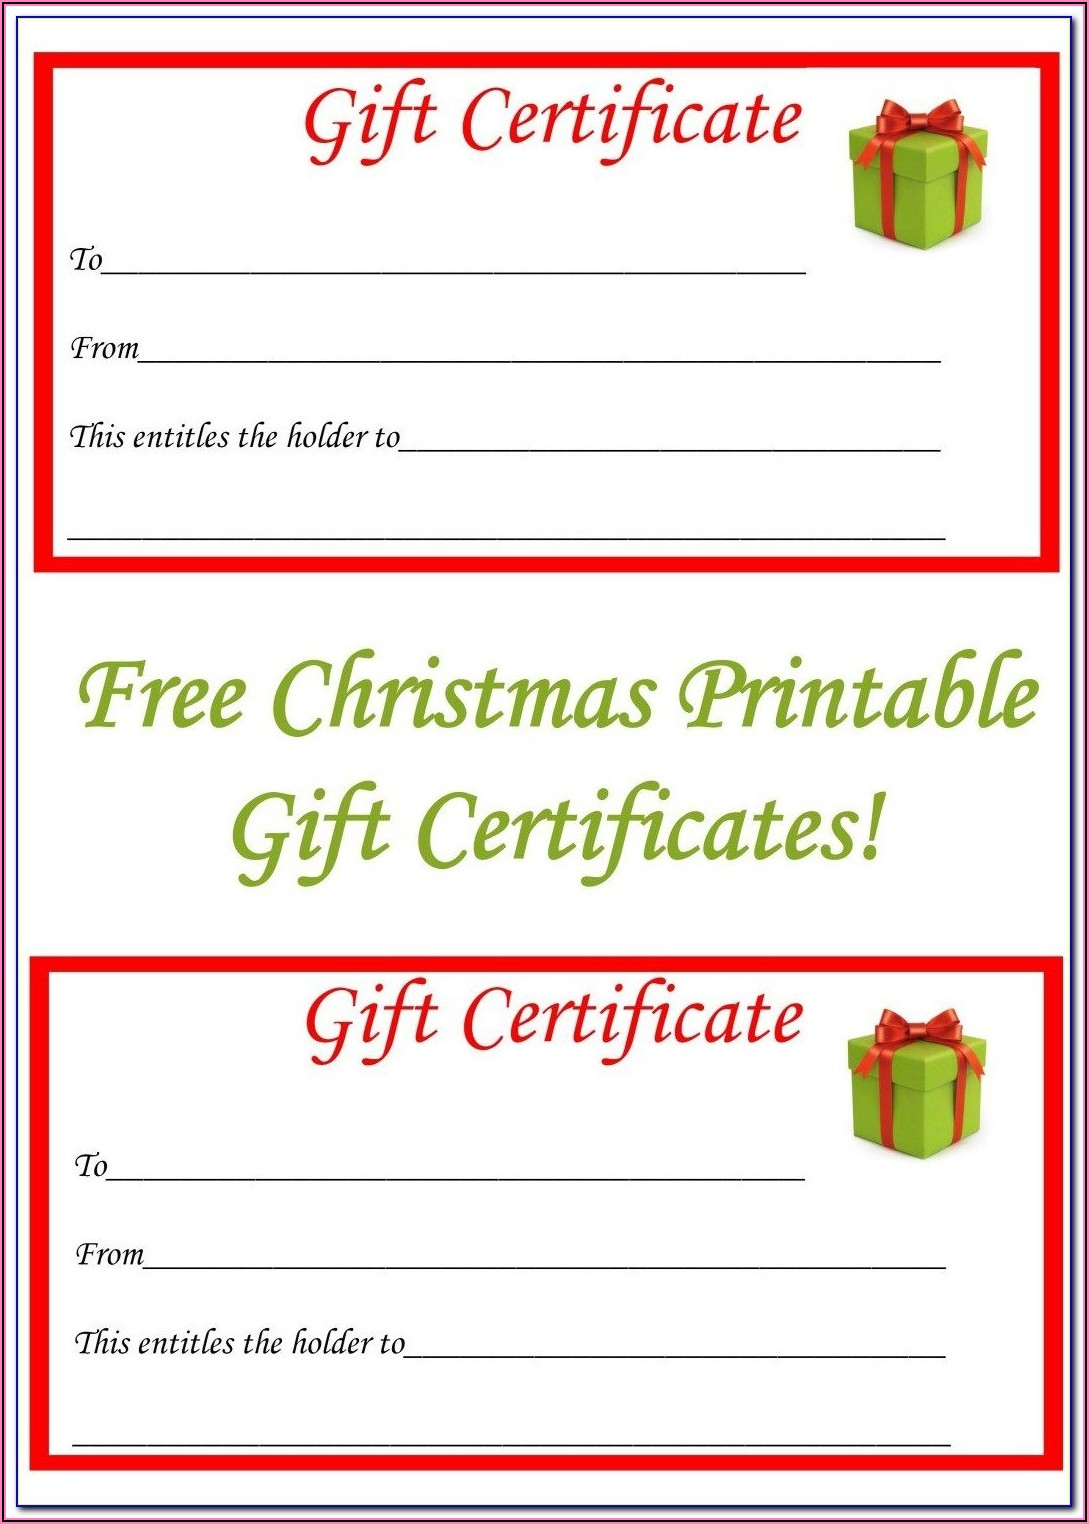 Birthday Gift Certificate Template Free Online